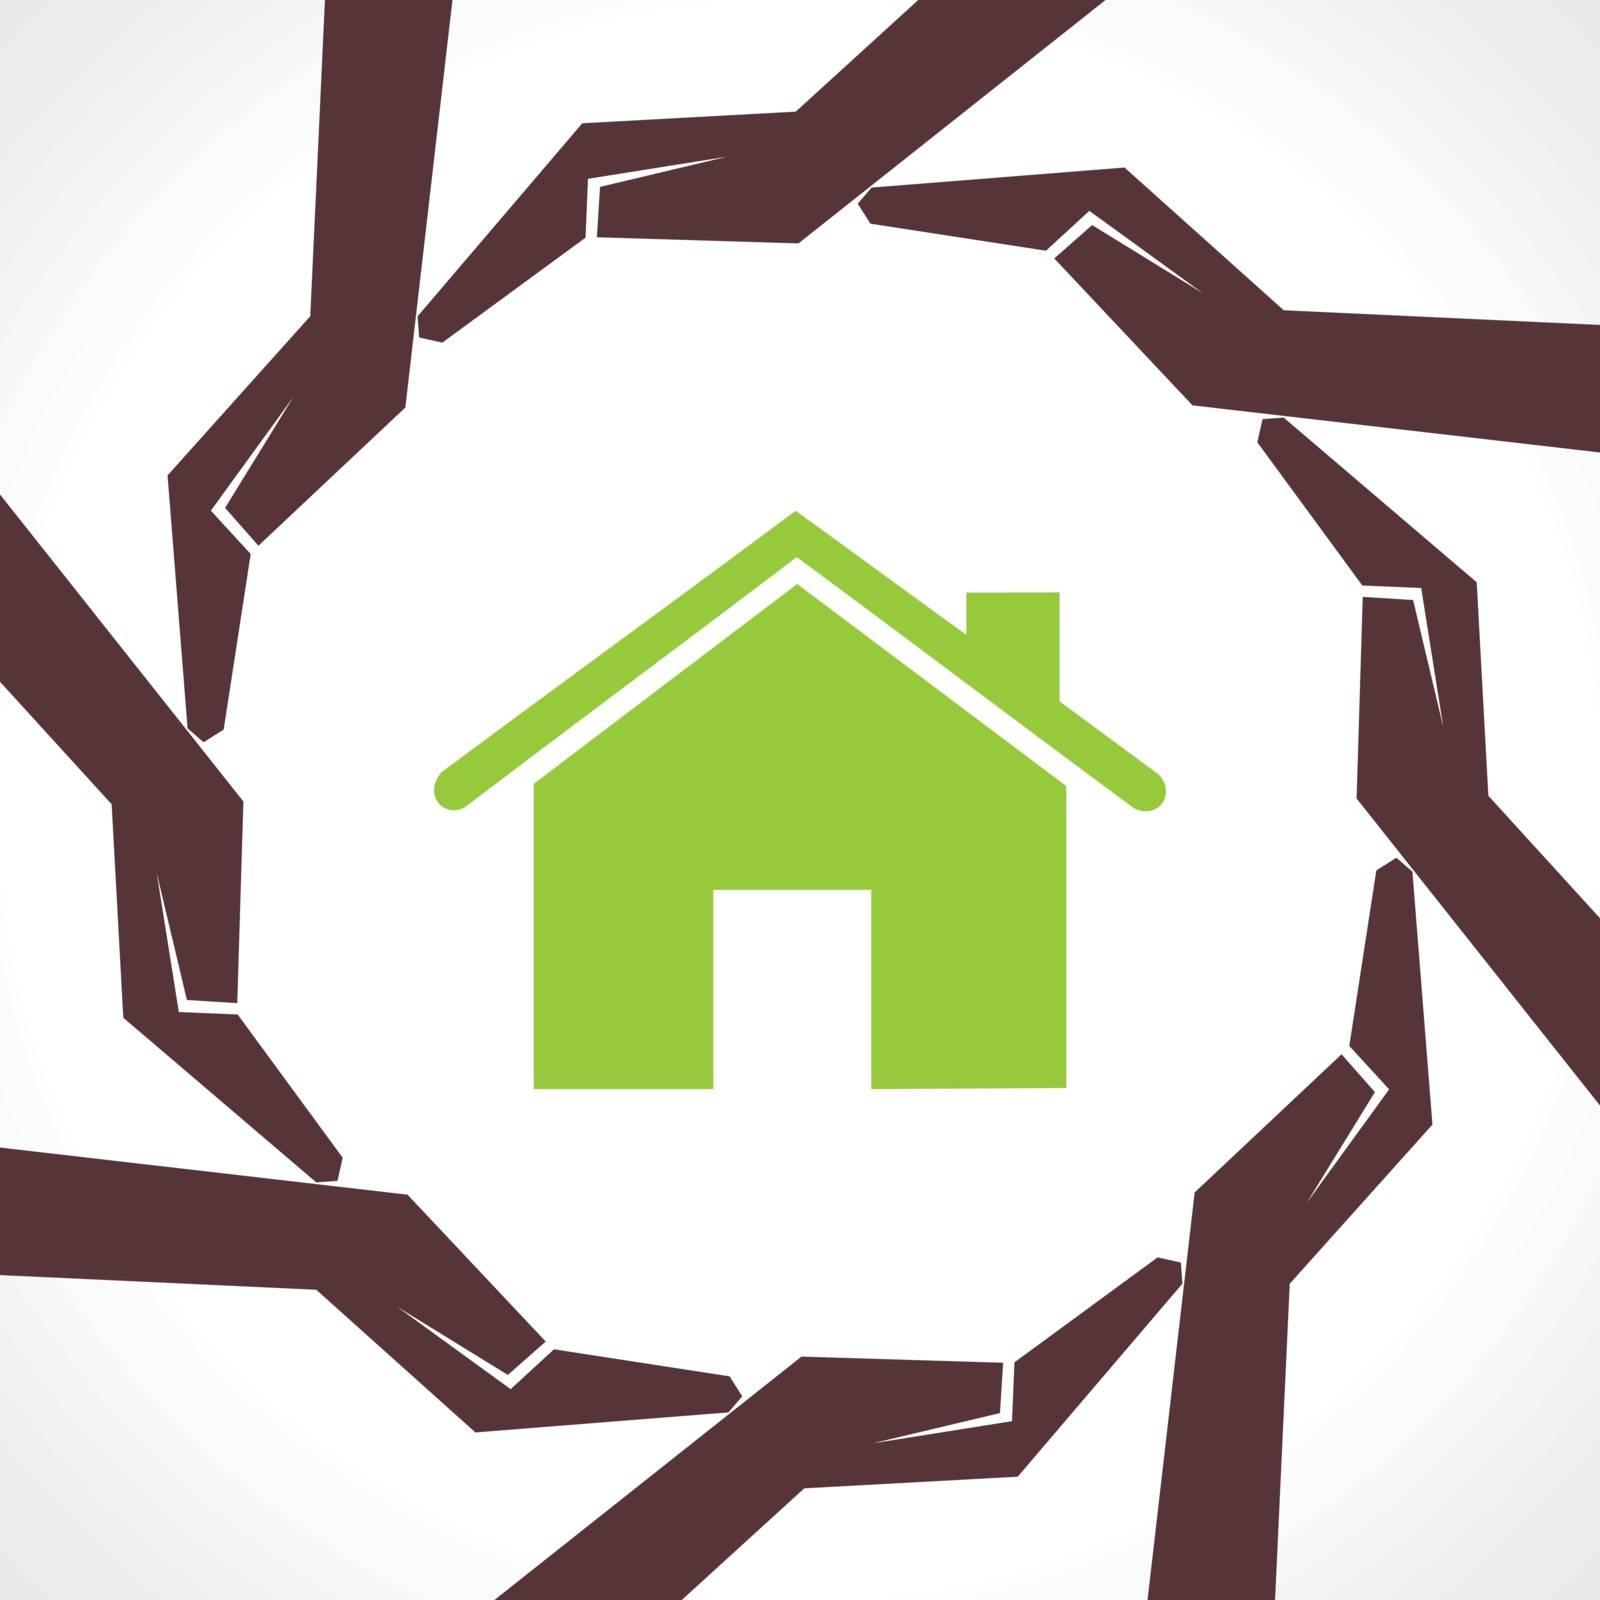 Protect home concept-vector illustration